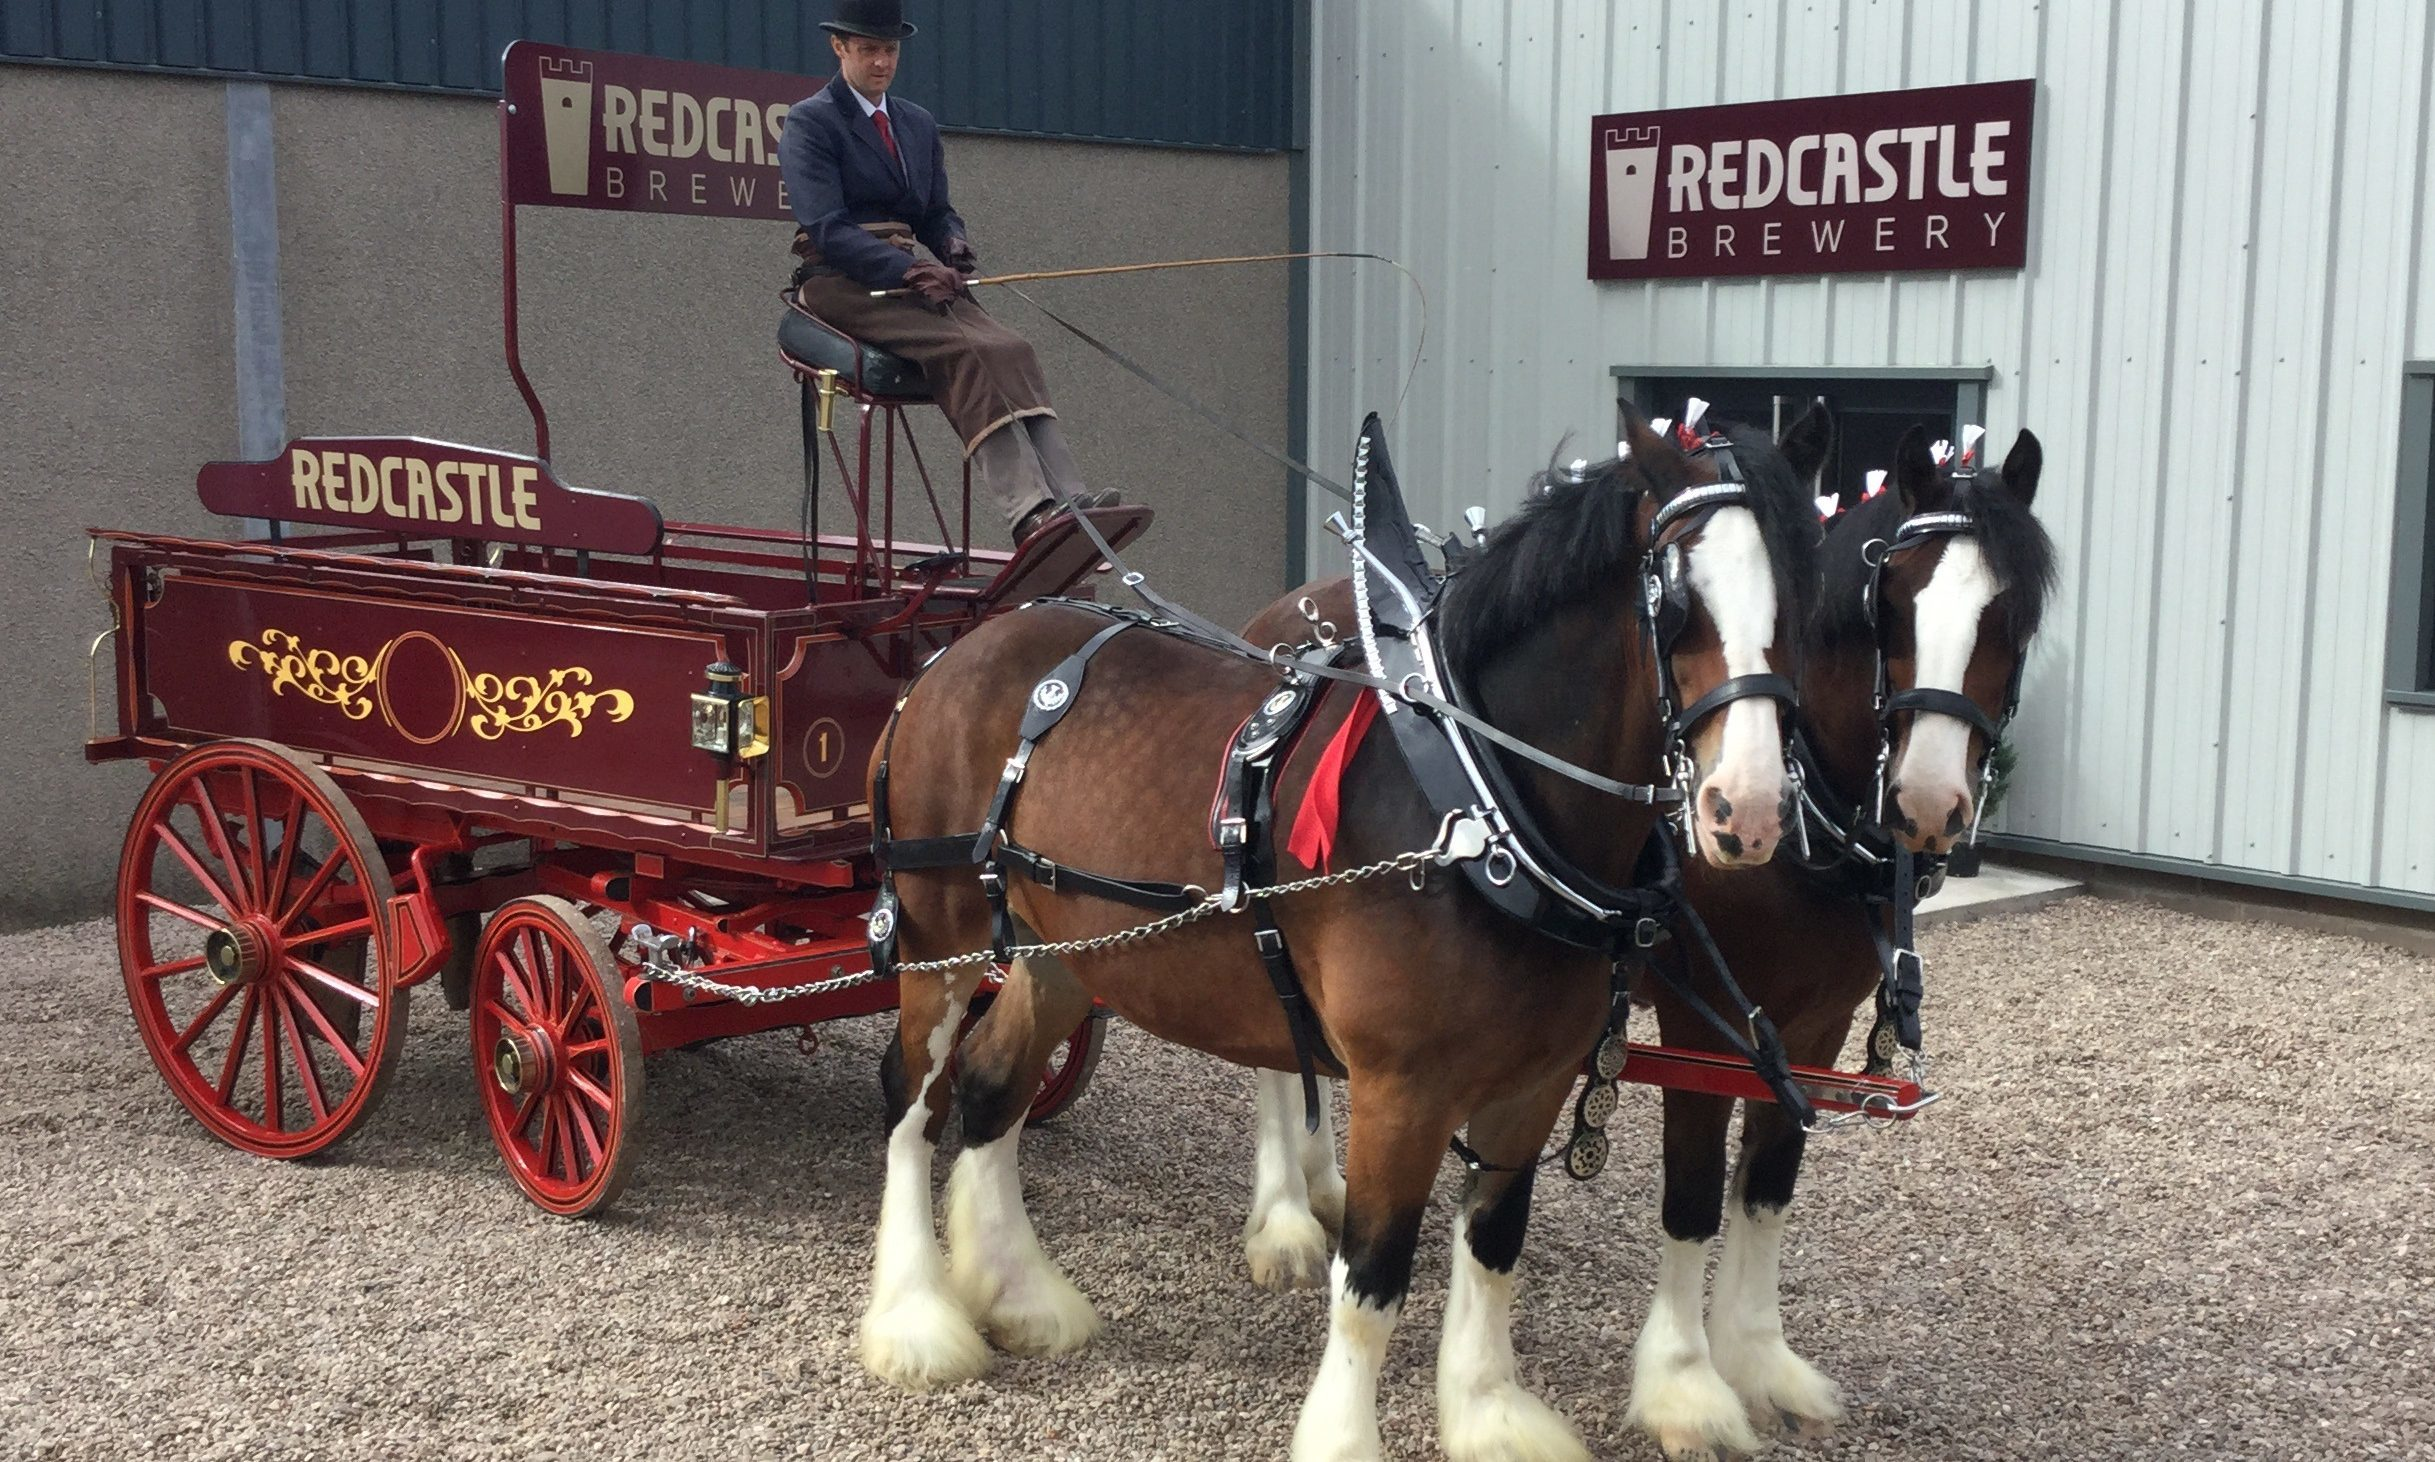 Scotland's newest craft ale has been launched by Redcastle Brewery on a farm in Carmyllie